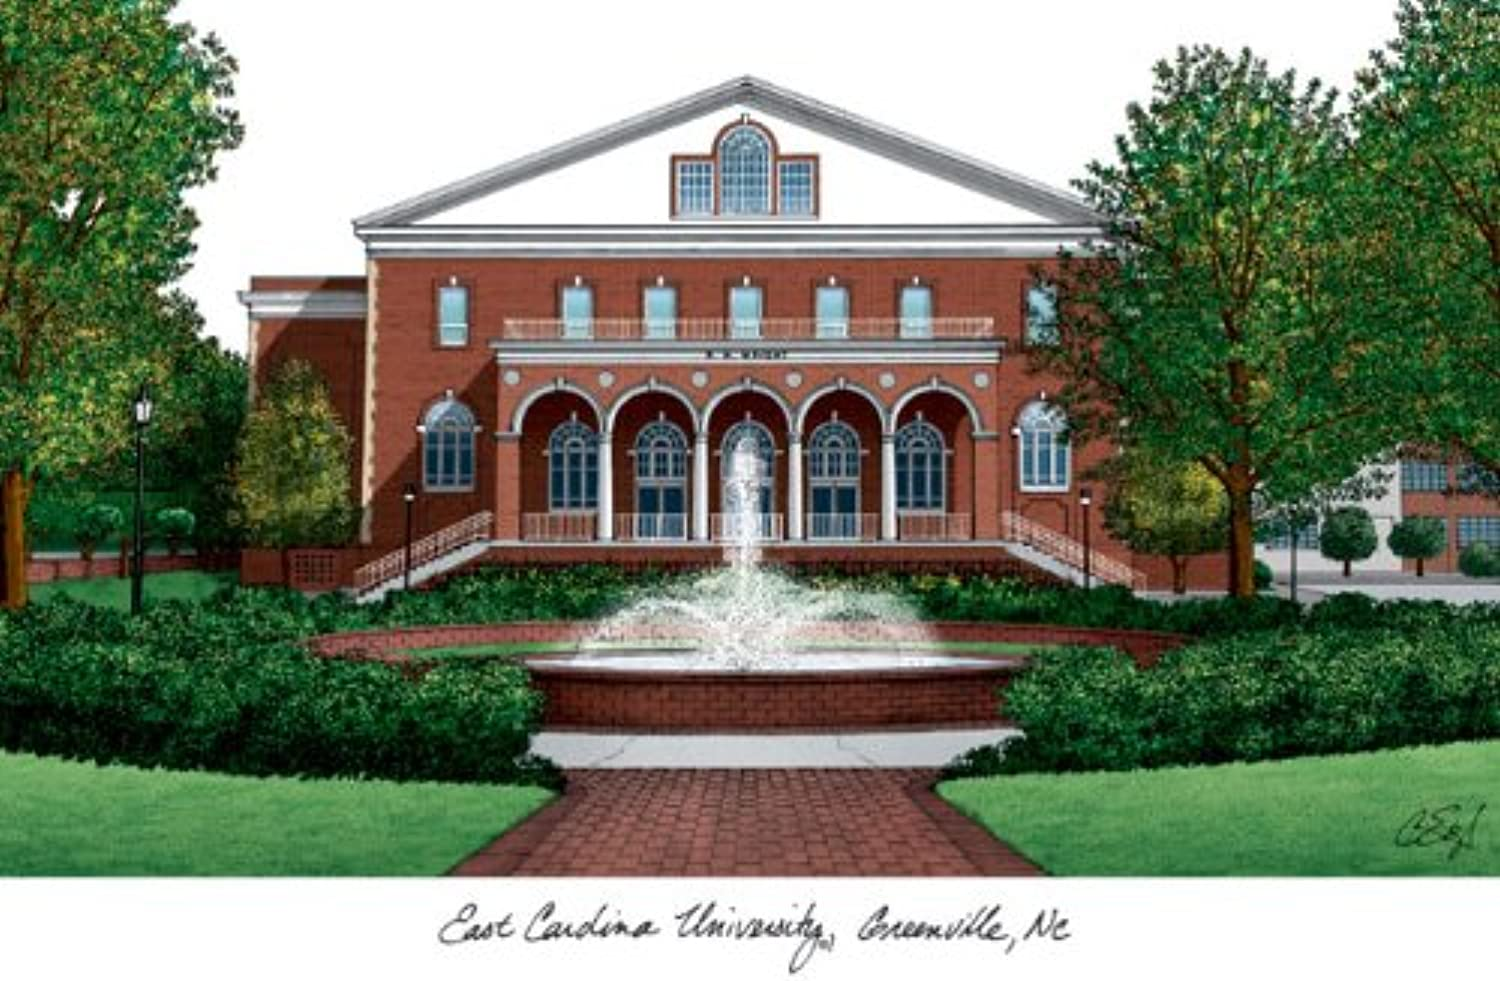 Campus Images East Carolina University Lithographic Print